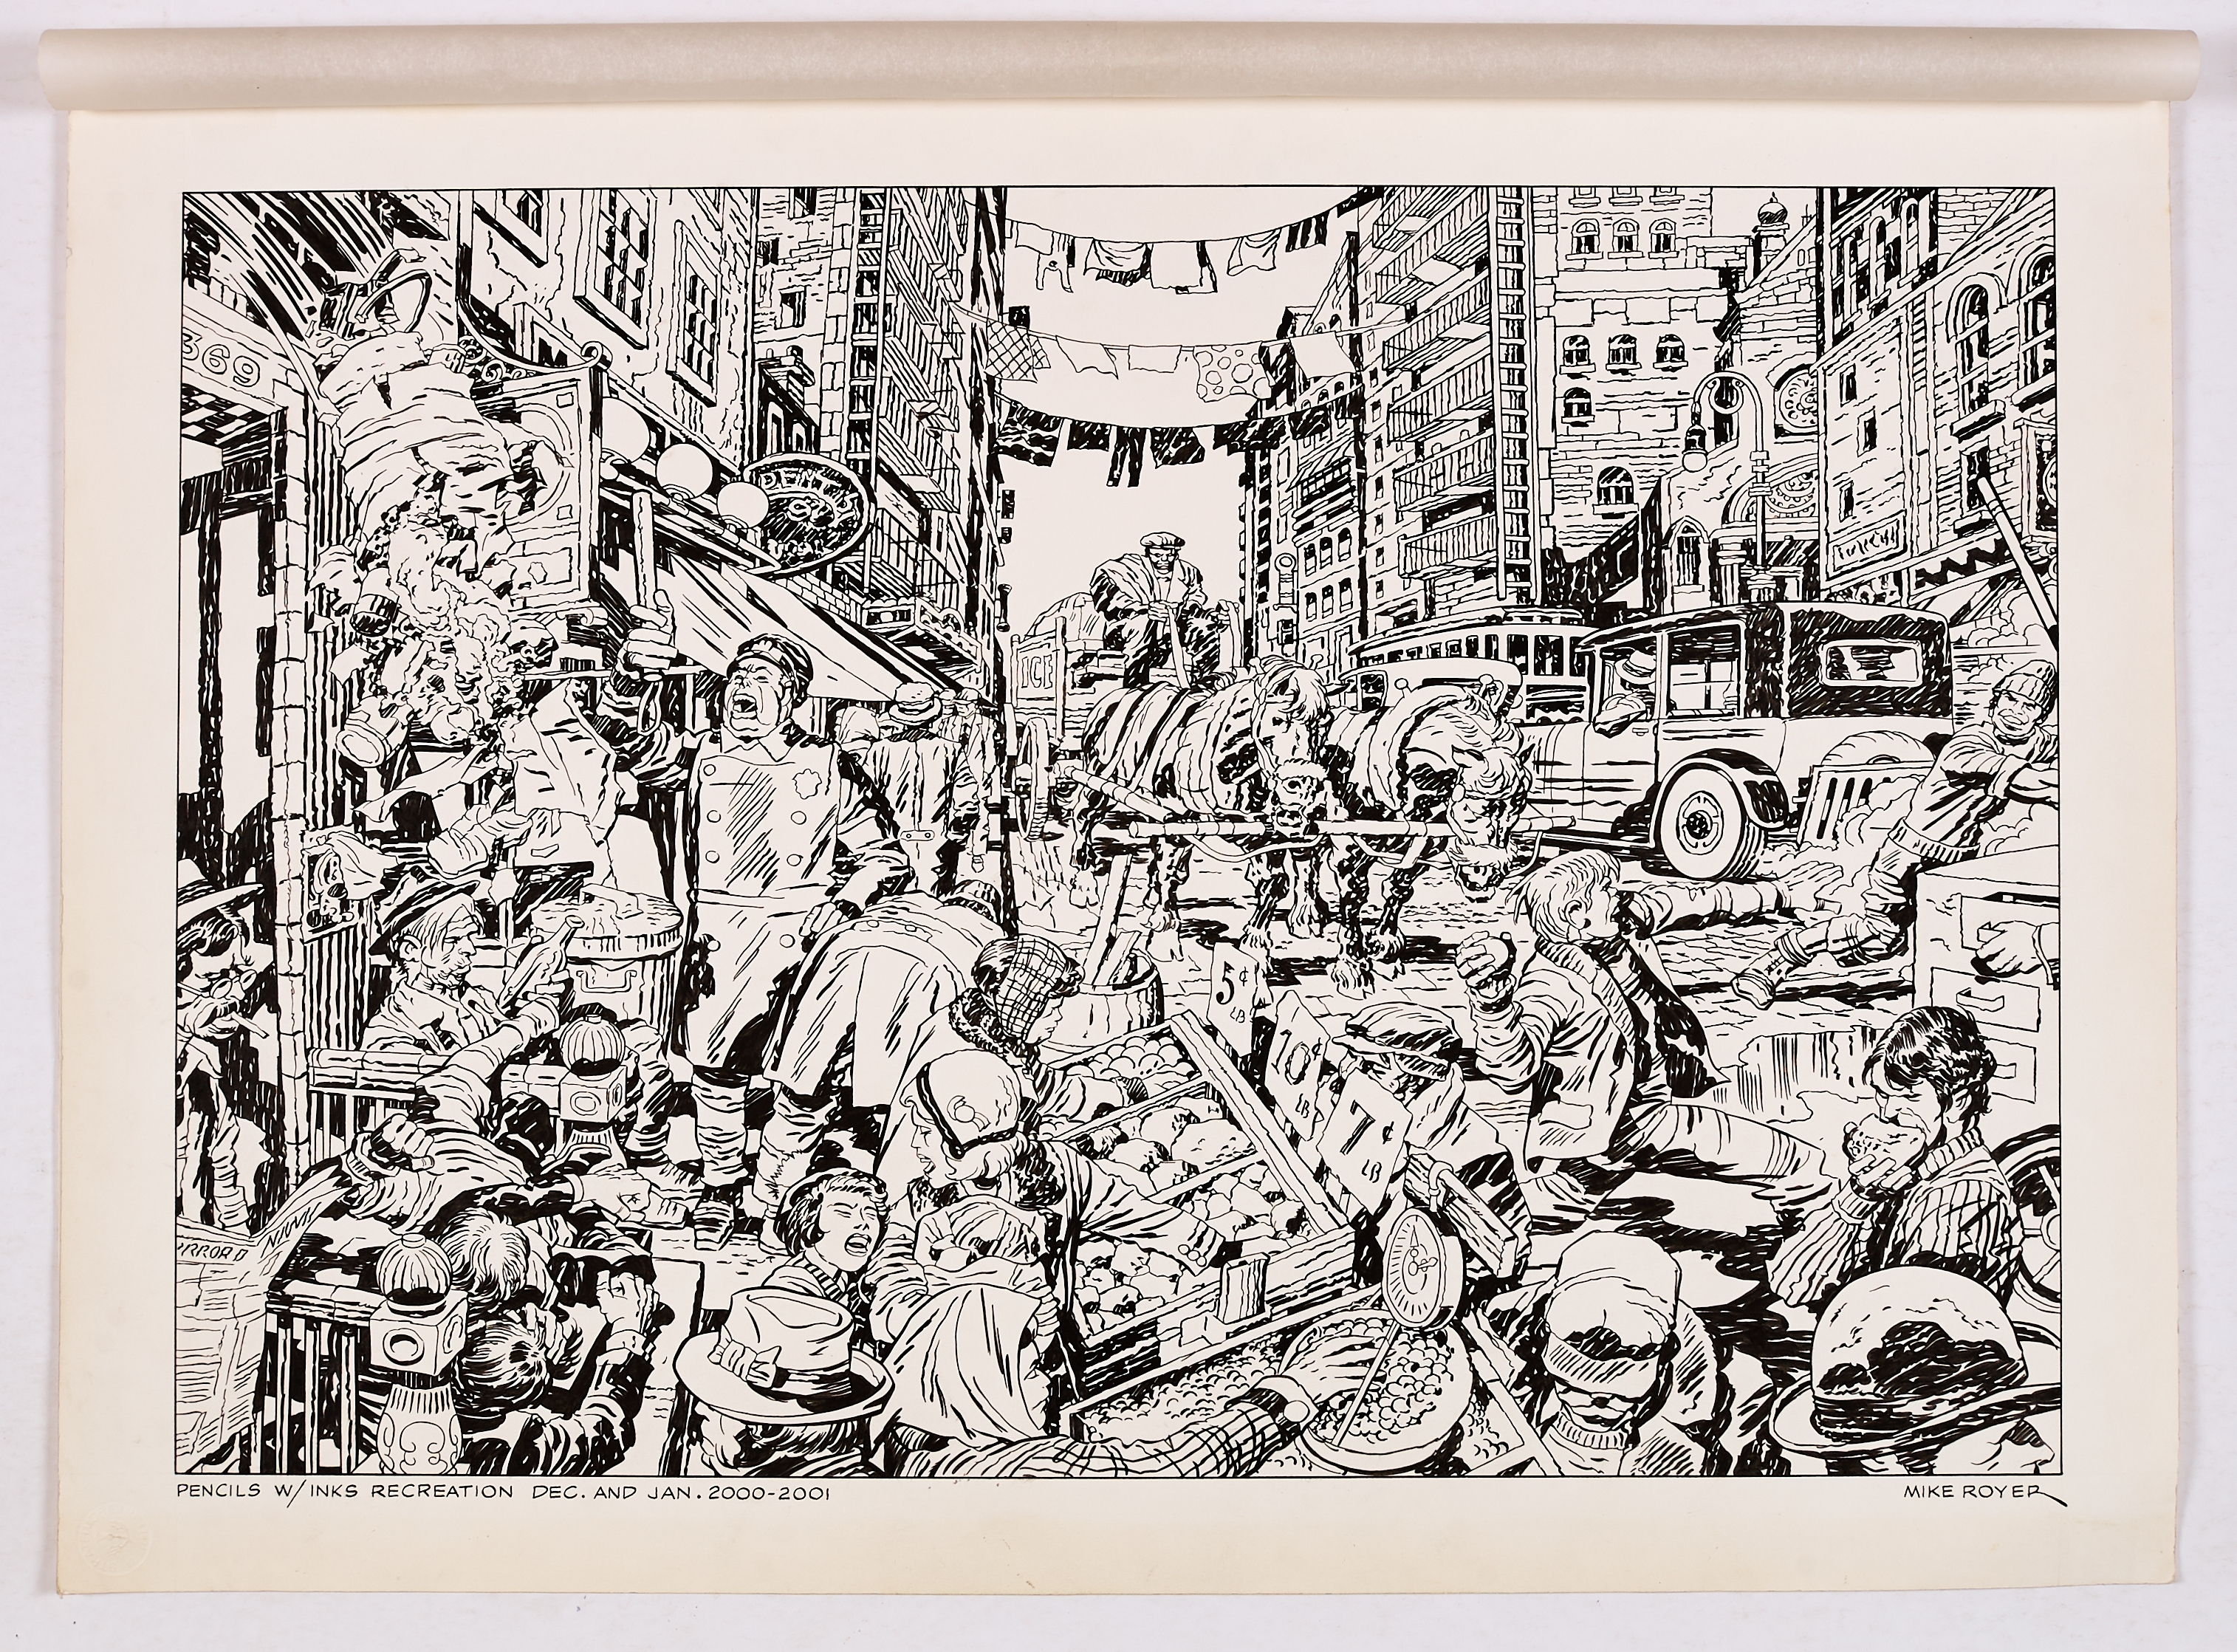 Lot 263 - Mike Royer's signed double-page recreation artwork (2001) of Jack Kirby's drawing of his early New